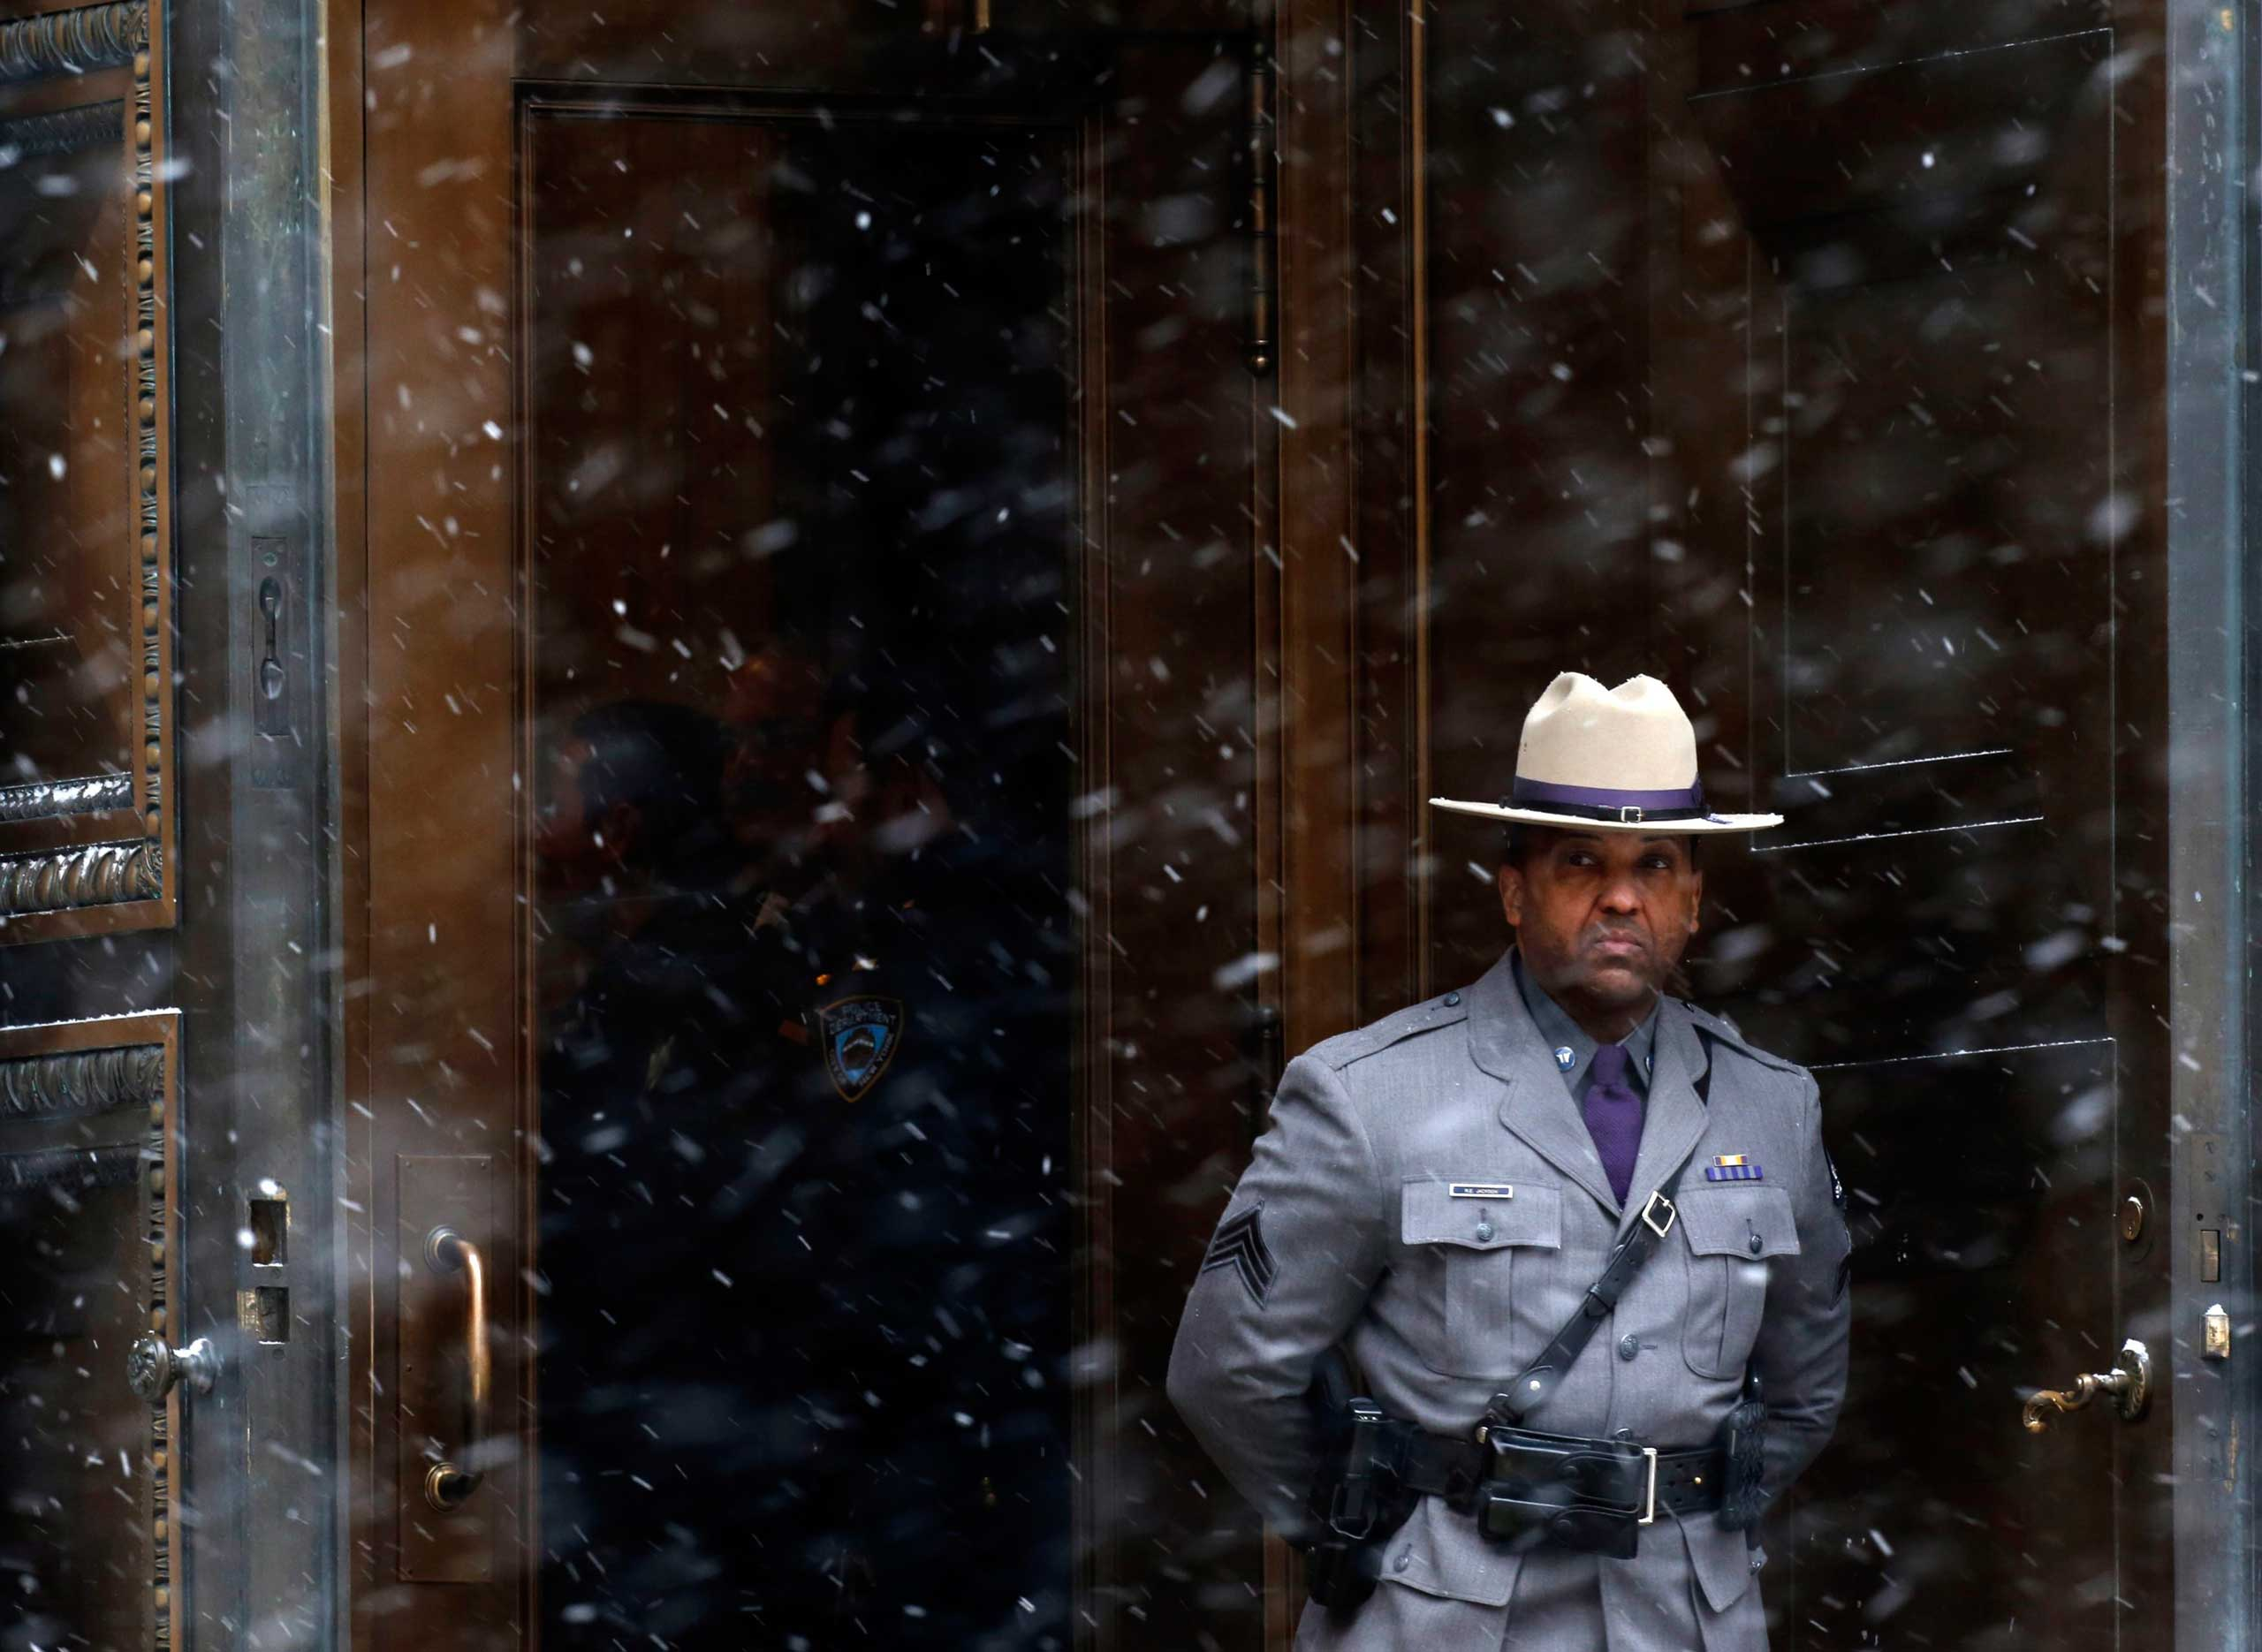 A New York State Police Trooper stands in the doorway outside St. Ignatius Loyola Church during the funeral service for former New York Governor Mario Cuomo in the Manhattan borough of New York, January 6, 2015. Cuomo, the three-time governor of New York and a leading voice of the Democratic Party's liberal wing who turned down several invitations to seek the U.S. presidency, died on January 1 at his home in Manhattan. He was 82. REUTERS/Carlo Allegri (UNITED STATES - Tags: POLITICS OBITUARY)